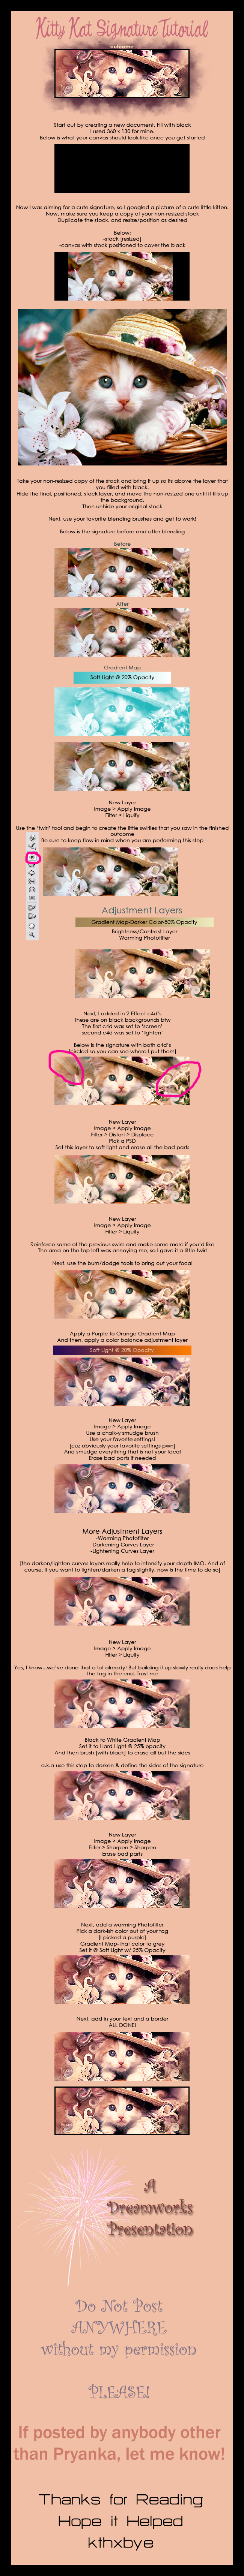 kitty_kat_signature_tutorial_by_pryanka.